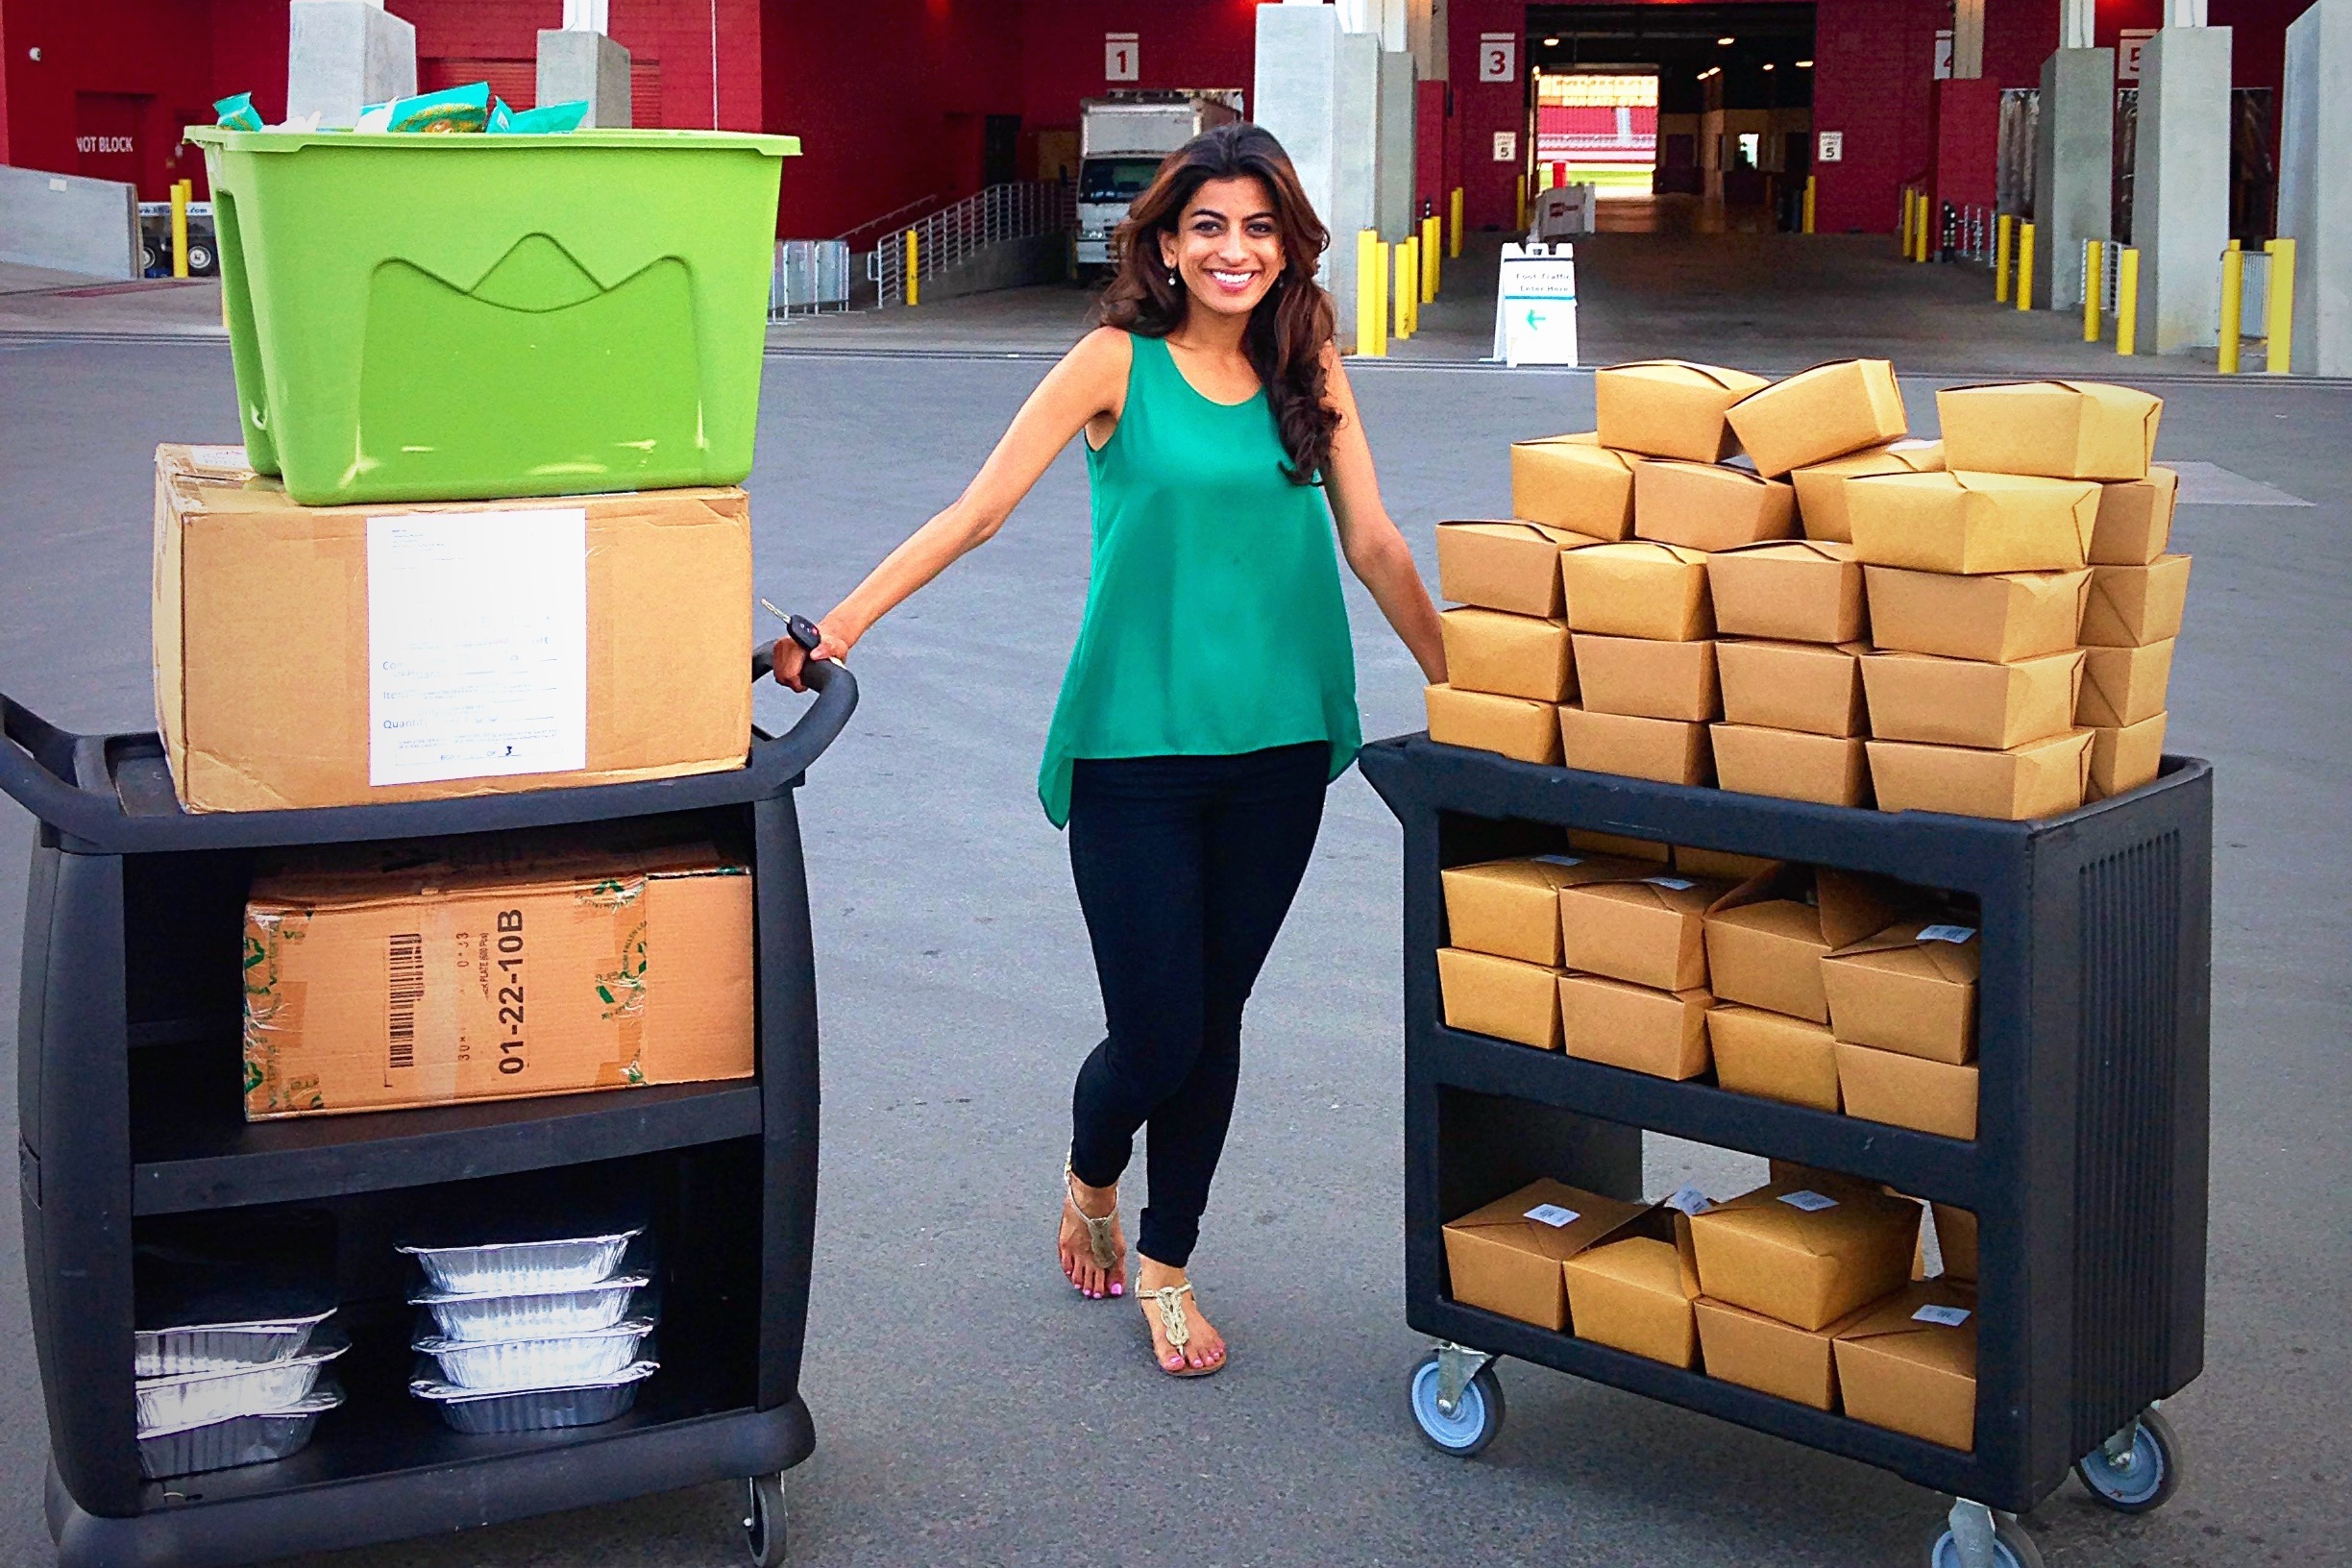 Feeding Forward CEO Komal Ahmad shows off surplus food collected from the Bite Silicon Valley food-tech conference in early June. Leftovers gathered at this event fed more than 4,279 people at eight different shelters and food banks.